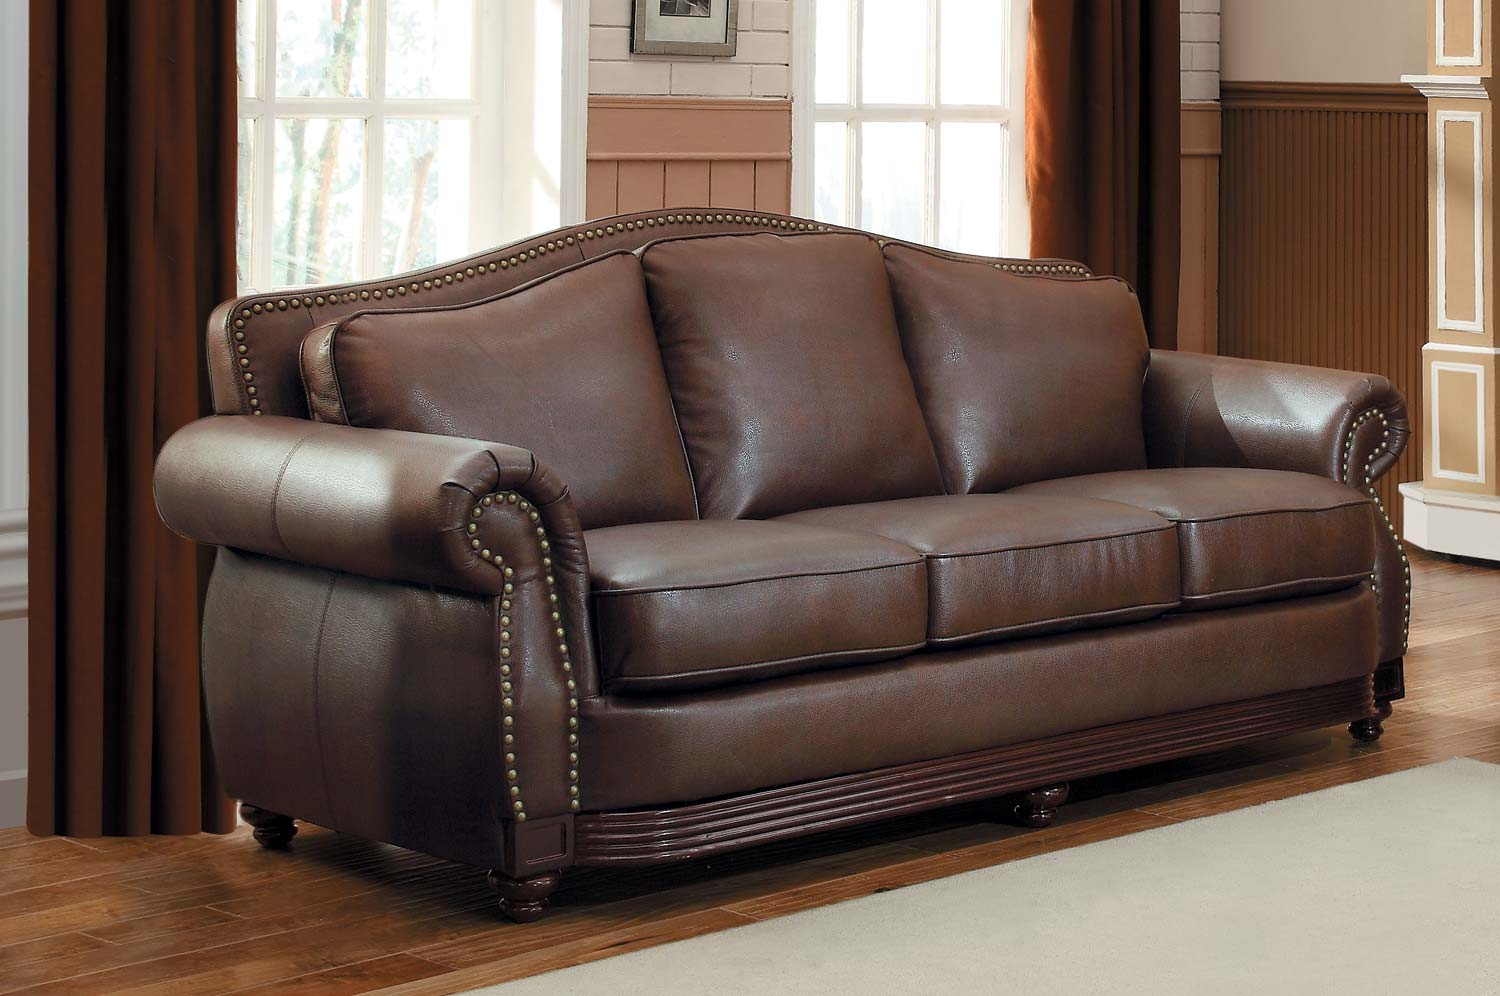 Homelegance Midwood Bonded Leather Sofa Dark Brown